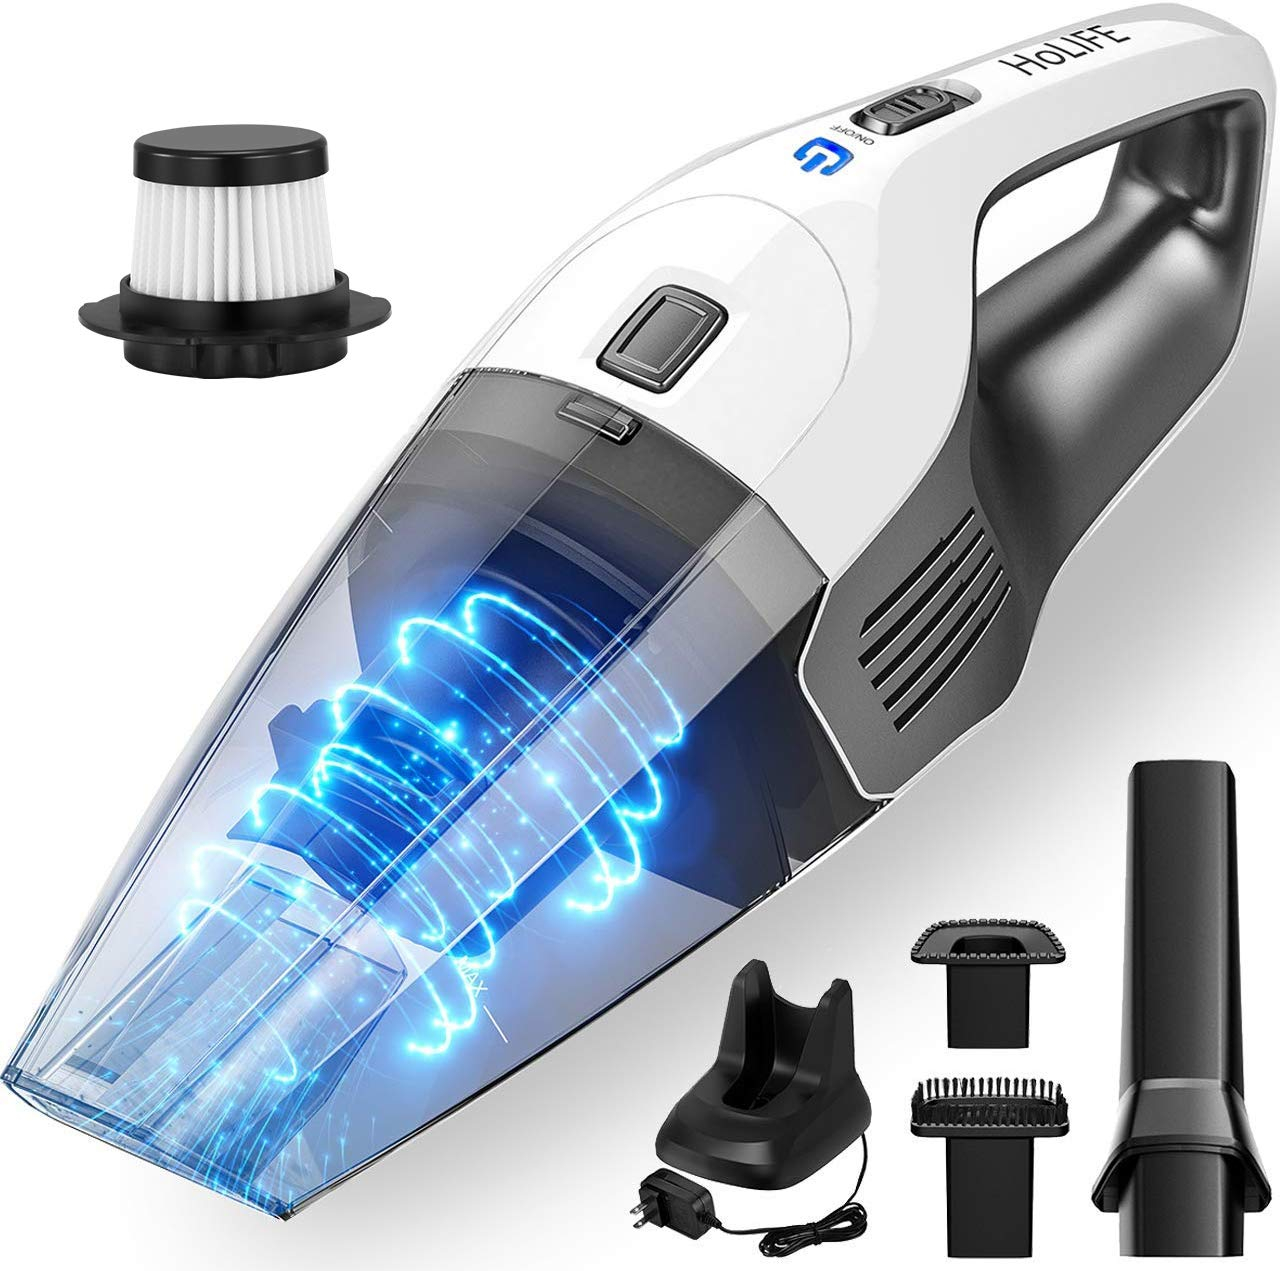 Holife 7000Pa Powerful Handheld Vacuum Cordless Cleaner Rechargeable